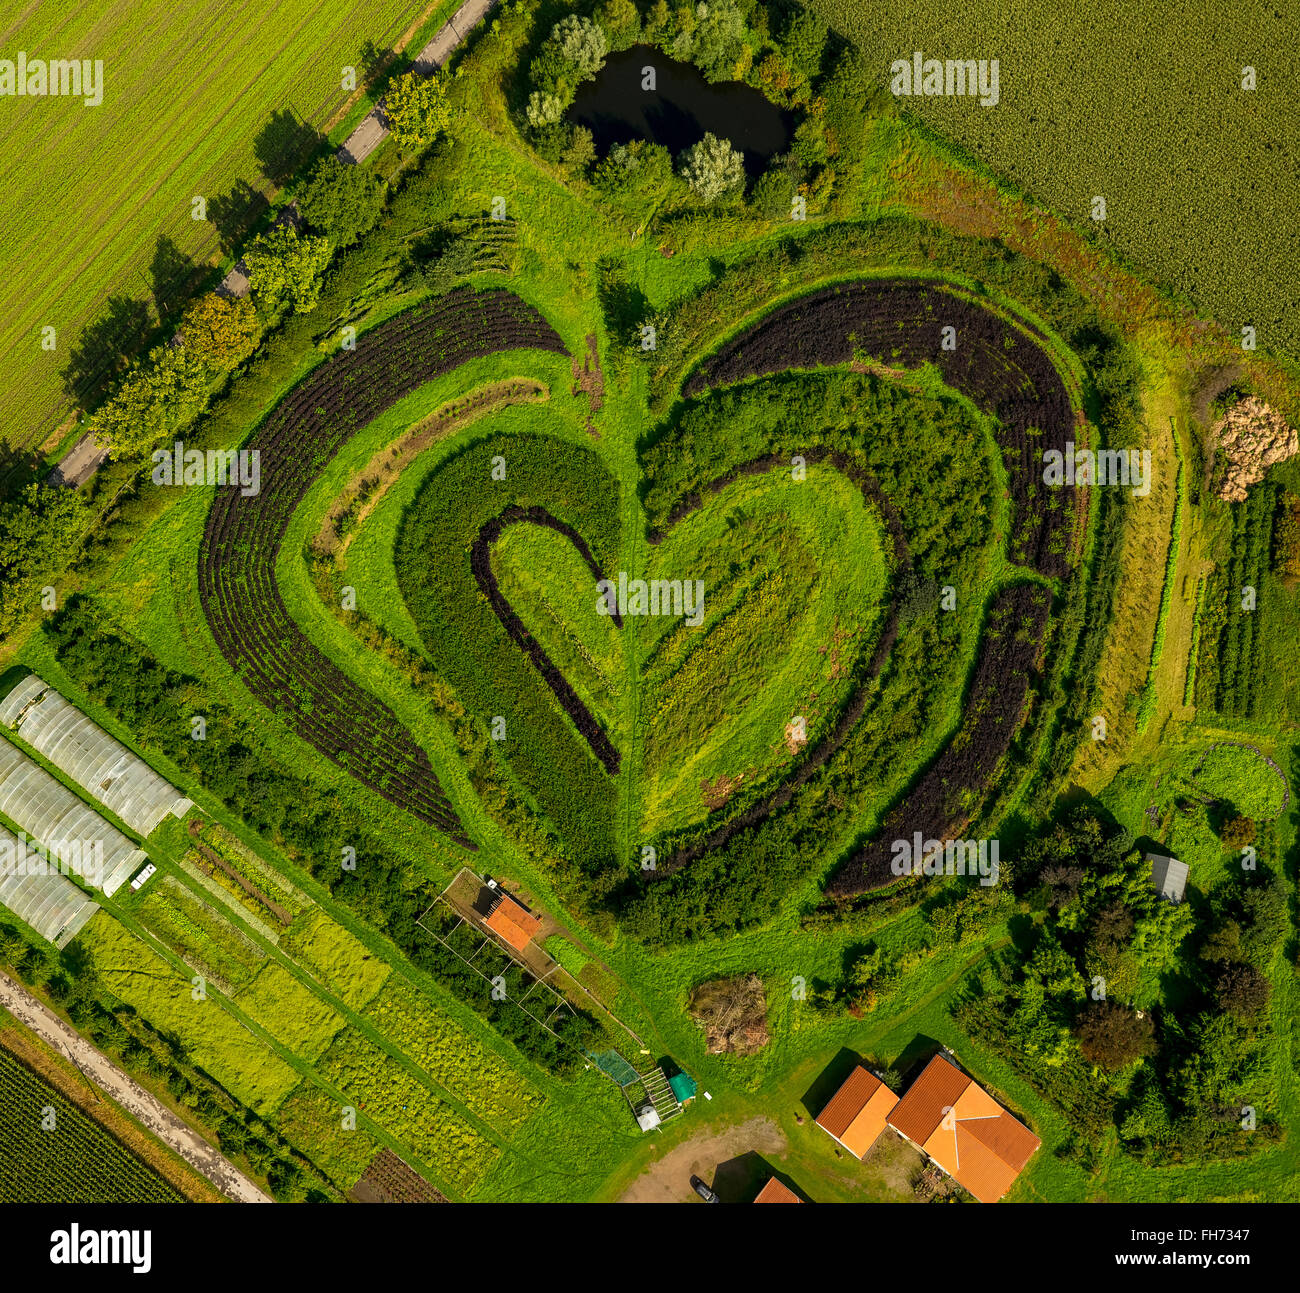 Beds in a nursery, heart shaped, market garden, Waltrop, Ruhr district, North Rhine-Westphalia, Germany - Stock Image